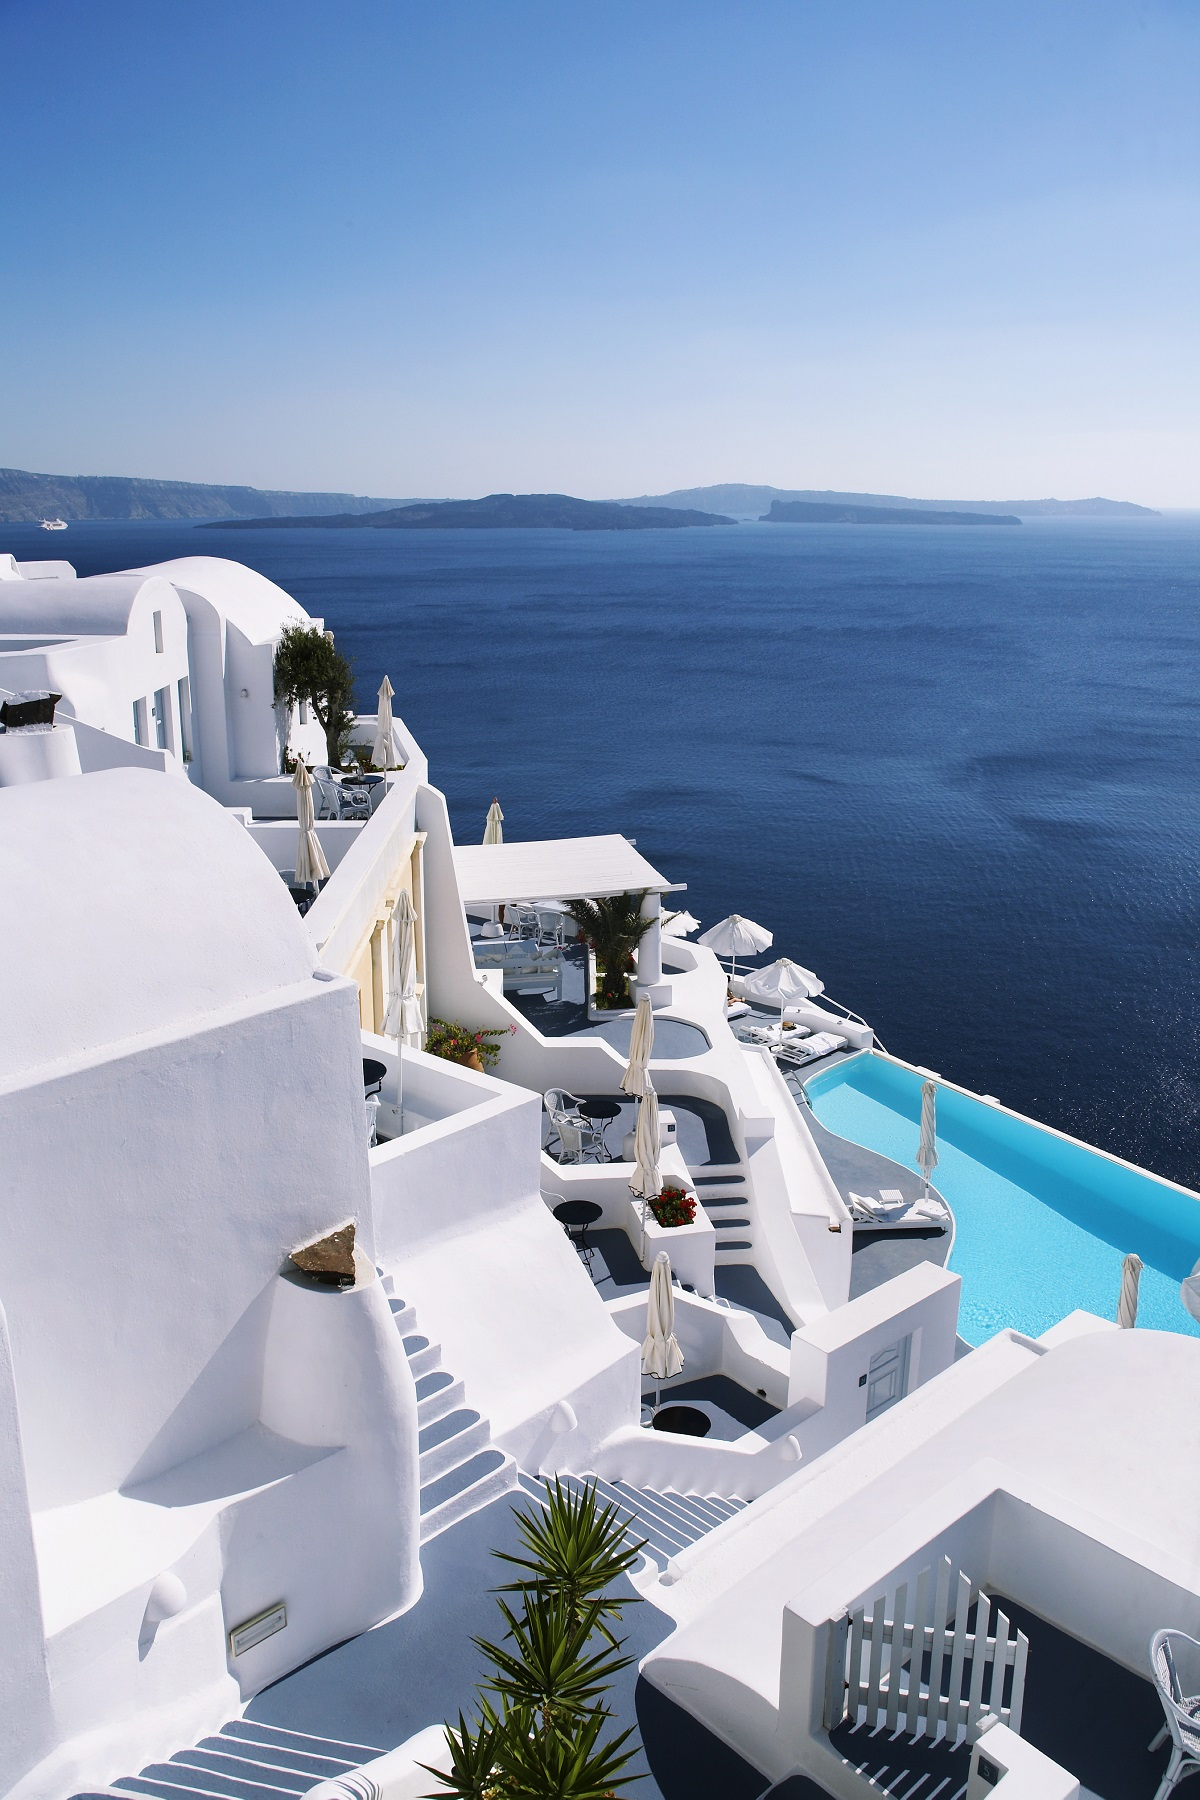 21 stunning infinity pool designs will leave you speechless - Santorini infinity pool ...